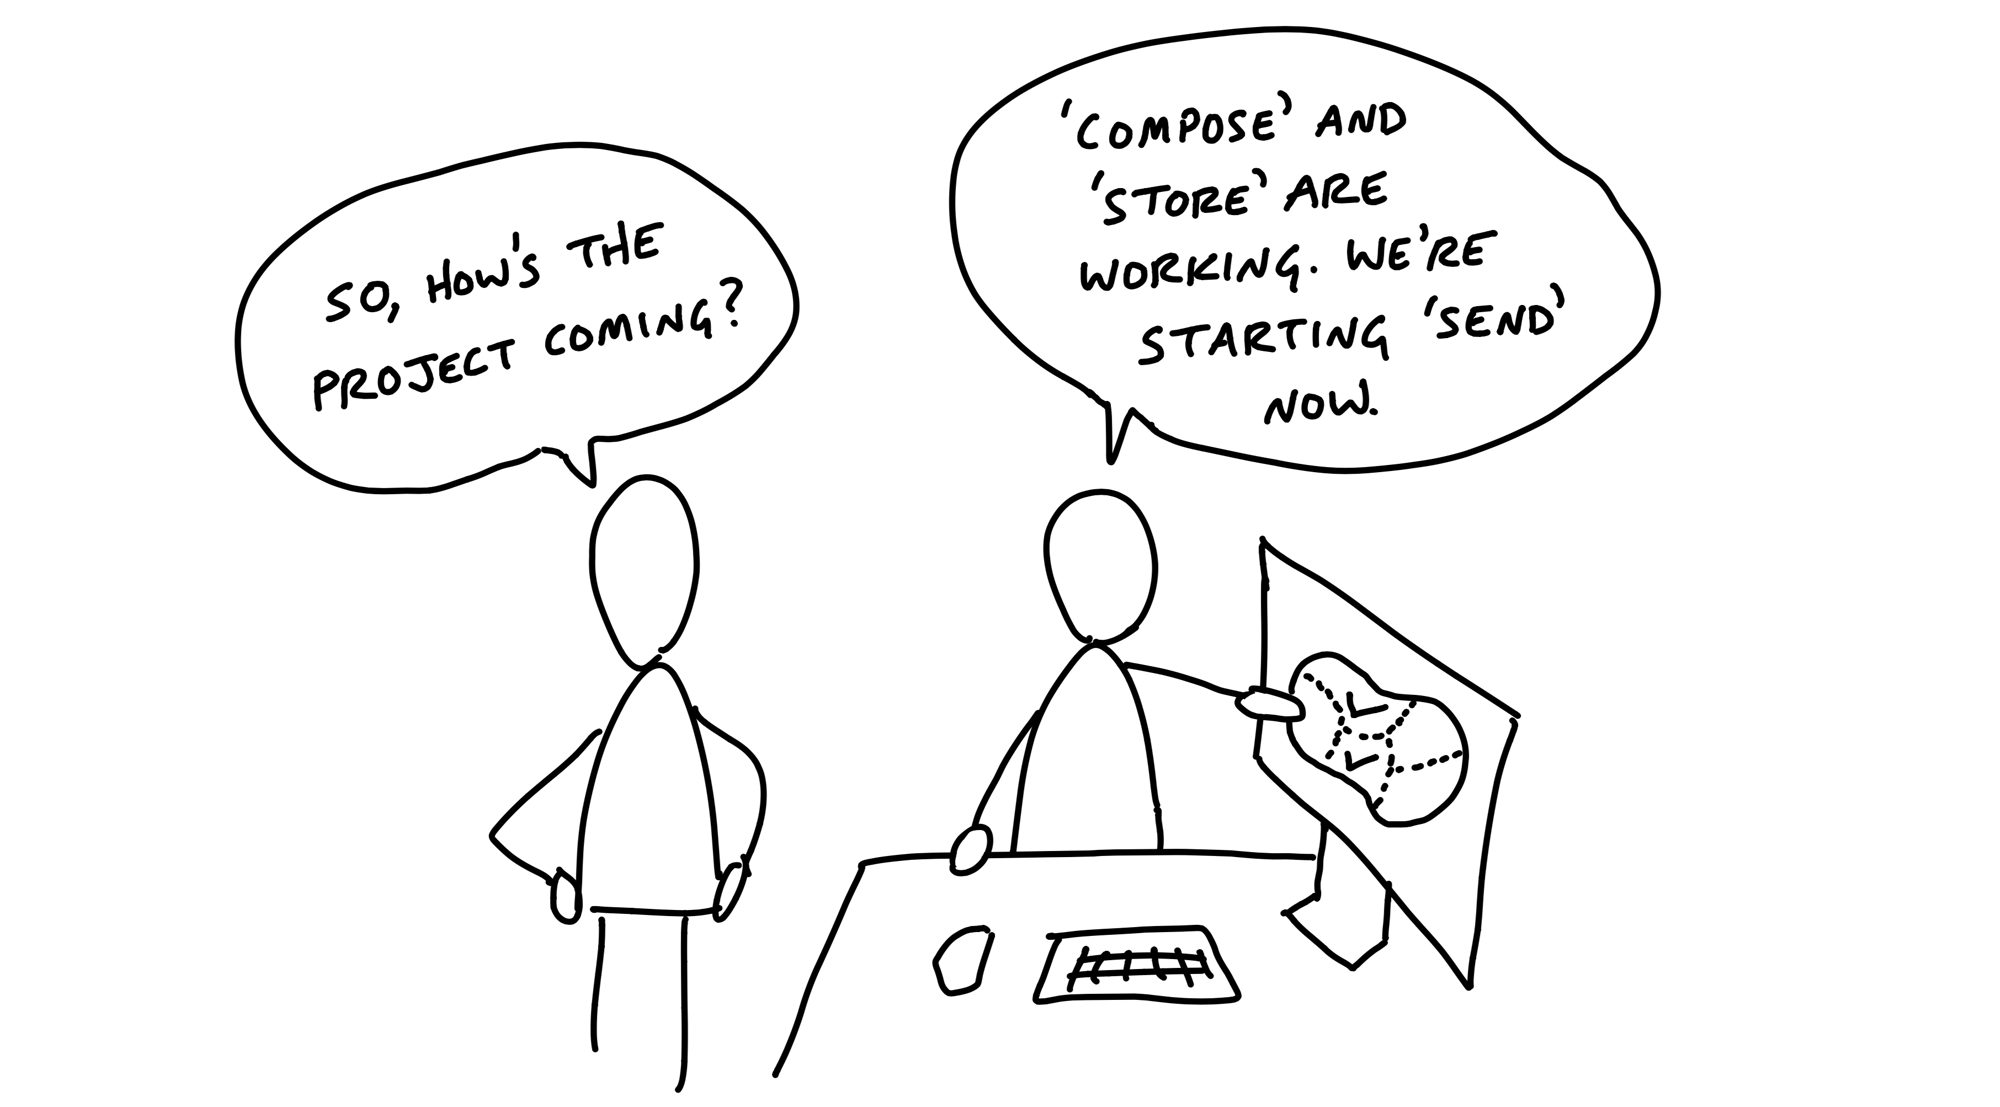 Cartoon. The same figure as in the last chapter stands beside the desk of another figure. Hands on hips, the first figure asks: So, how's the project coming? The figure on the right points to a monitor with a map drawn. The map outlines territories, some of them with checkmarks inside. A speech bubble says: 'Compose' and 'Store' are working. We're starting 'Send' now.